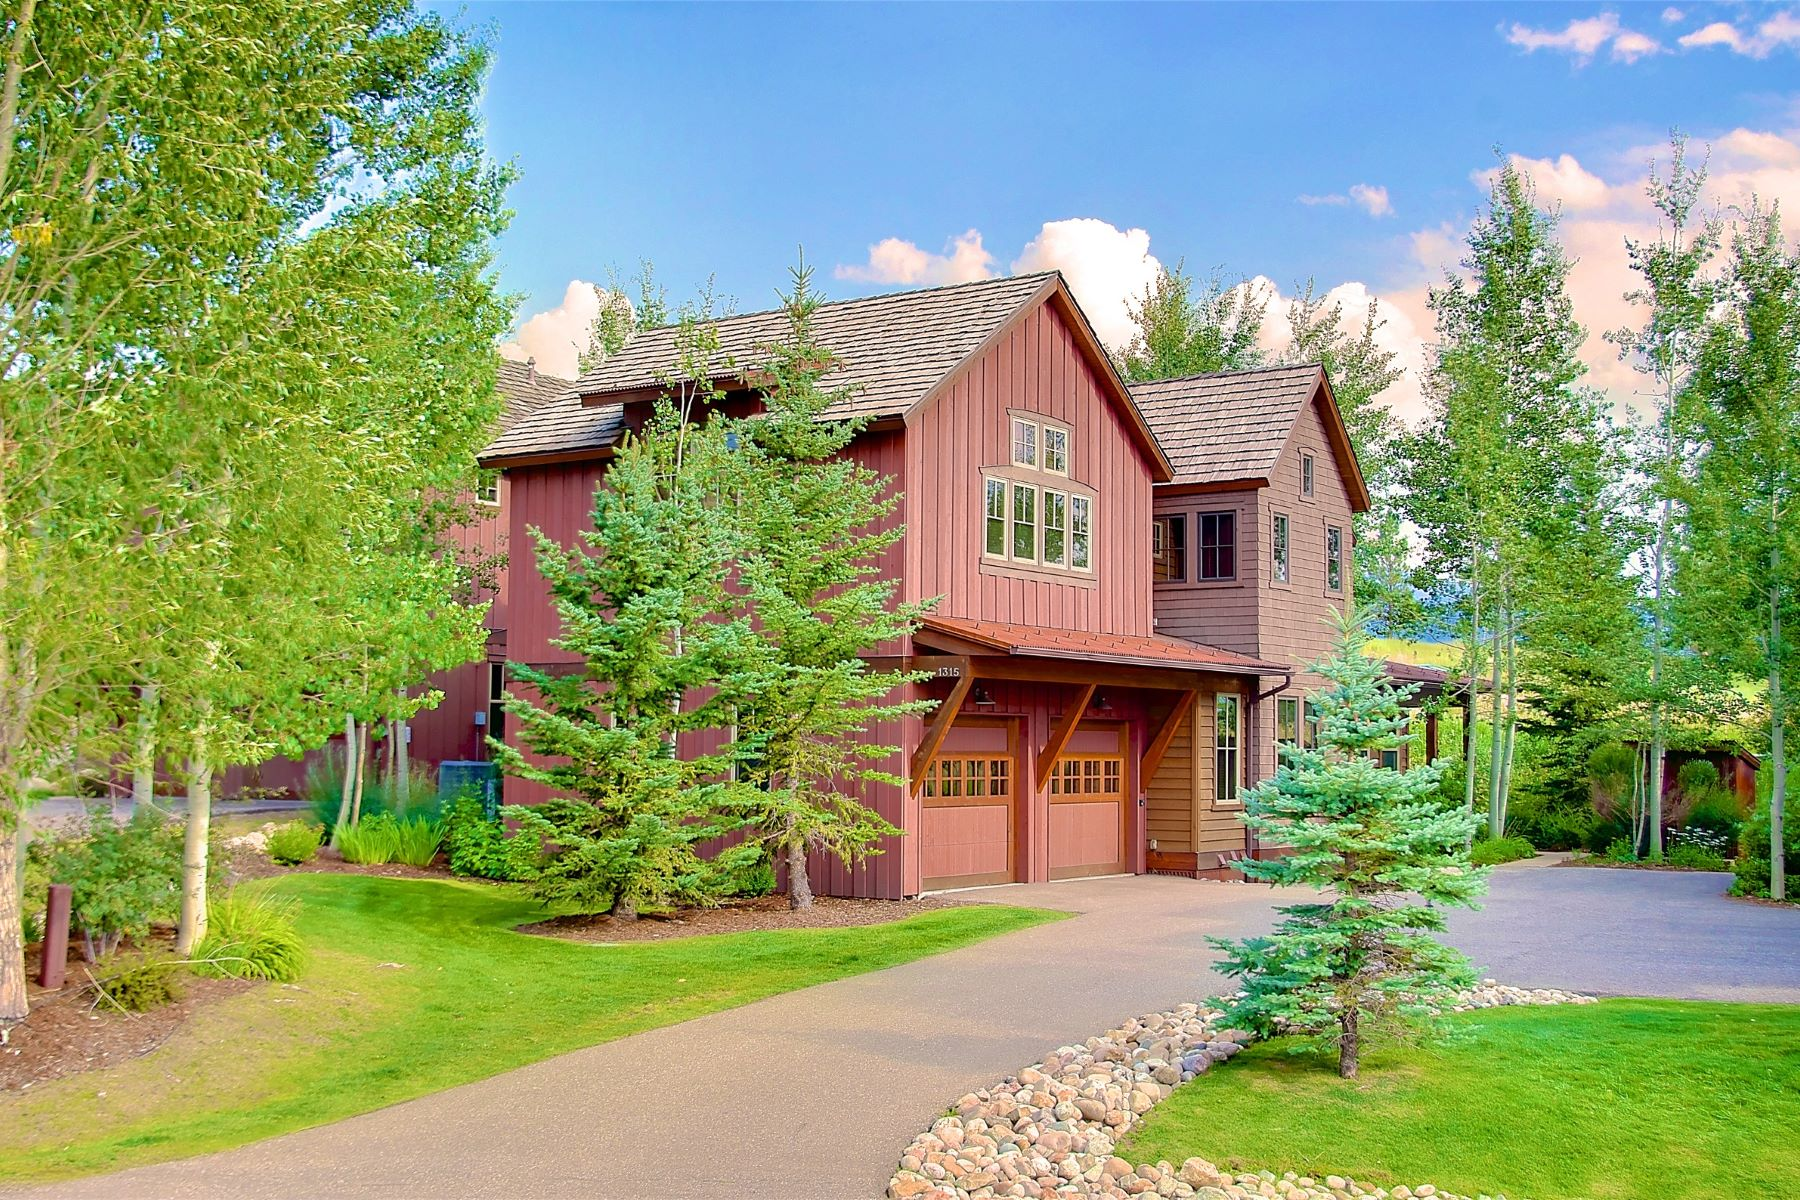 Townhouse for Sale at The Porches of Steamboat 1303 Turning Leaf Court Steamboat Springs, Colorado 80487 United States